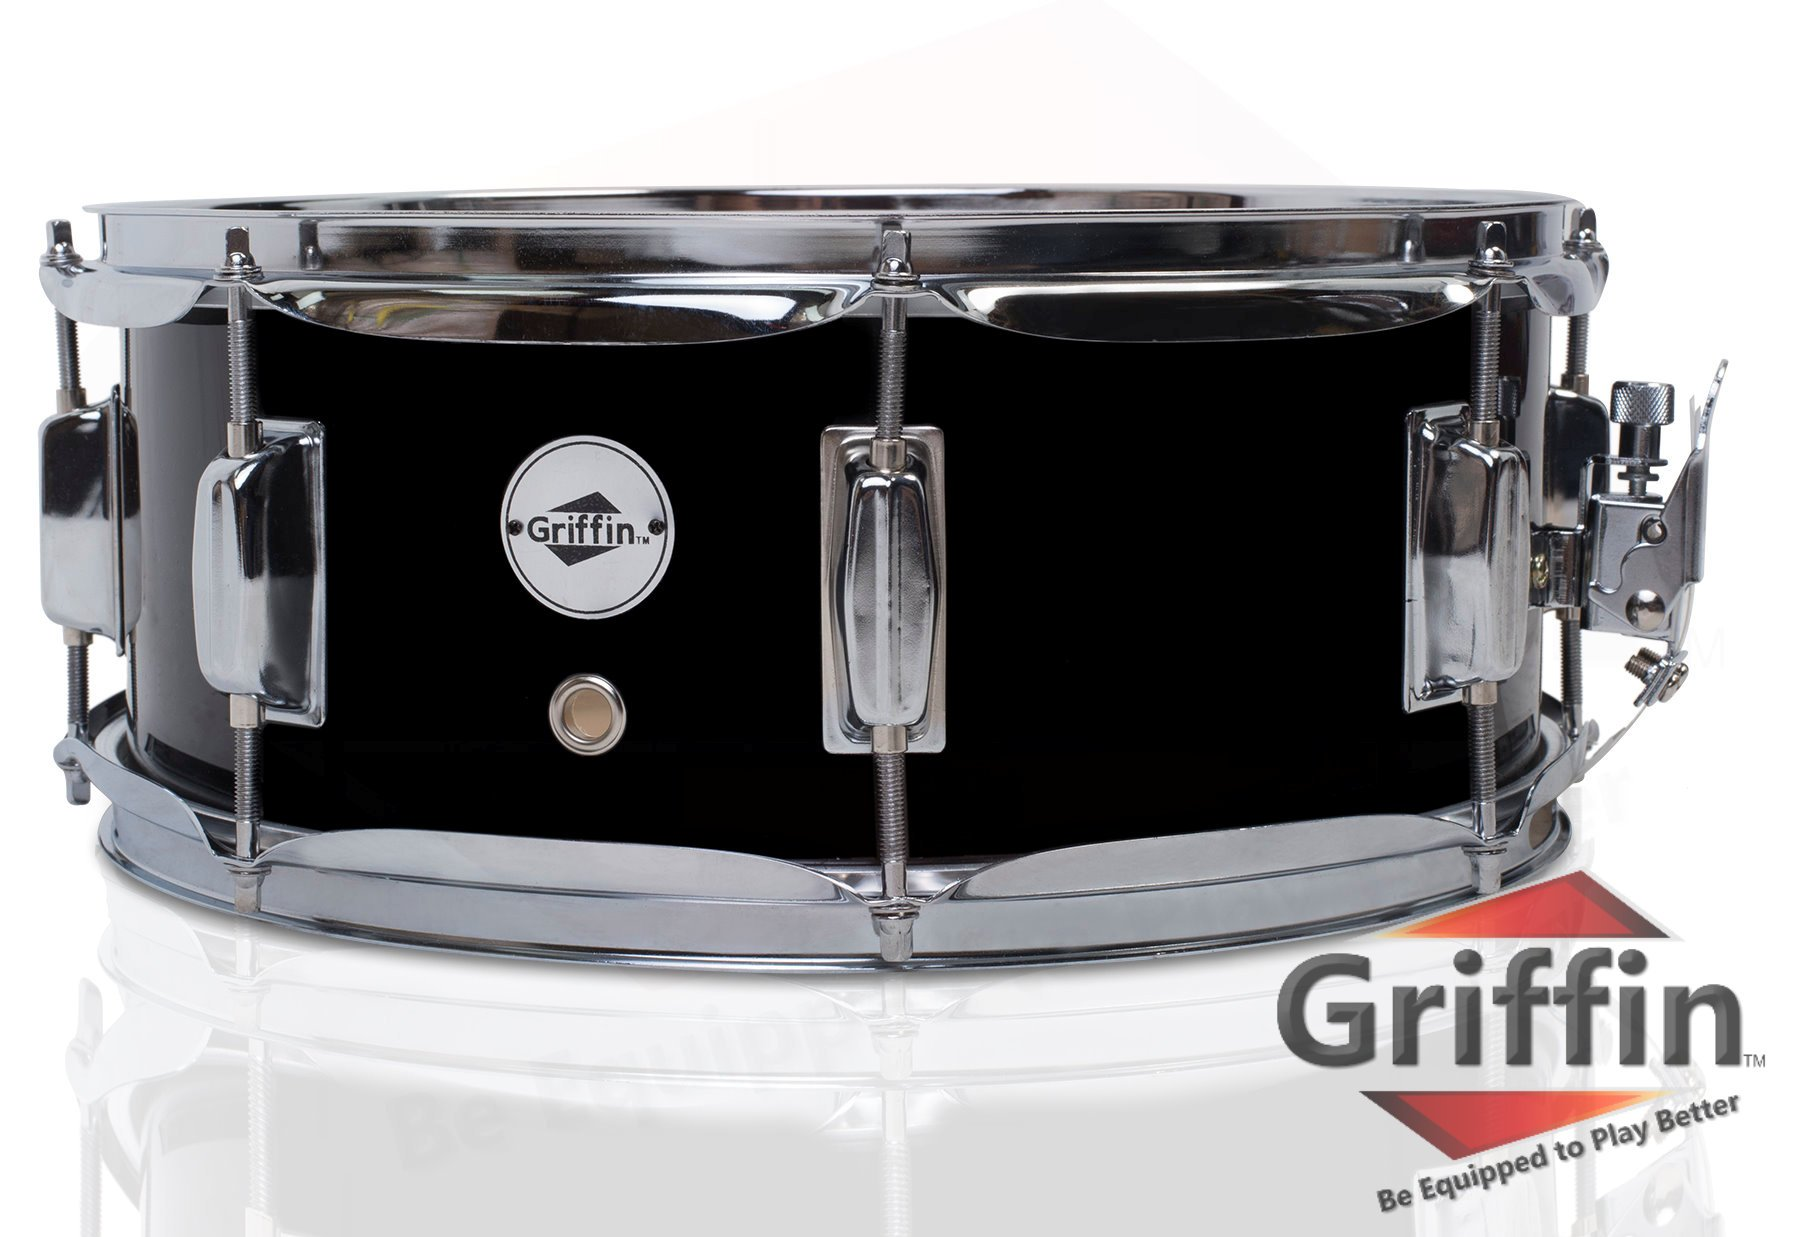 Griffin Snare Drum | Poplar Wood Shell 14'' x 5.5'' with Black PVC Glossy Finish|Percussion Musical Instrument with Drummers Key for Students & Professionals|8 Tuning Lugs & Snare Strainer by Griffin